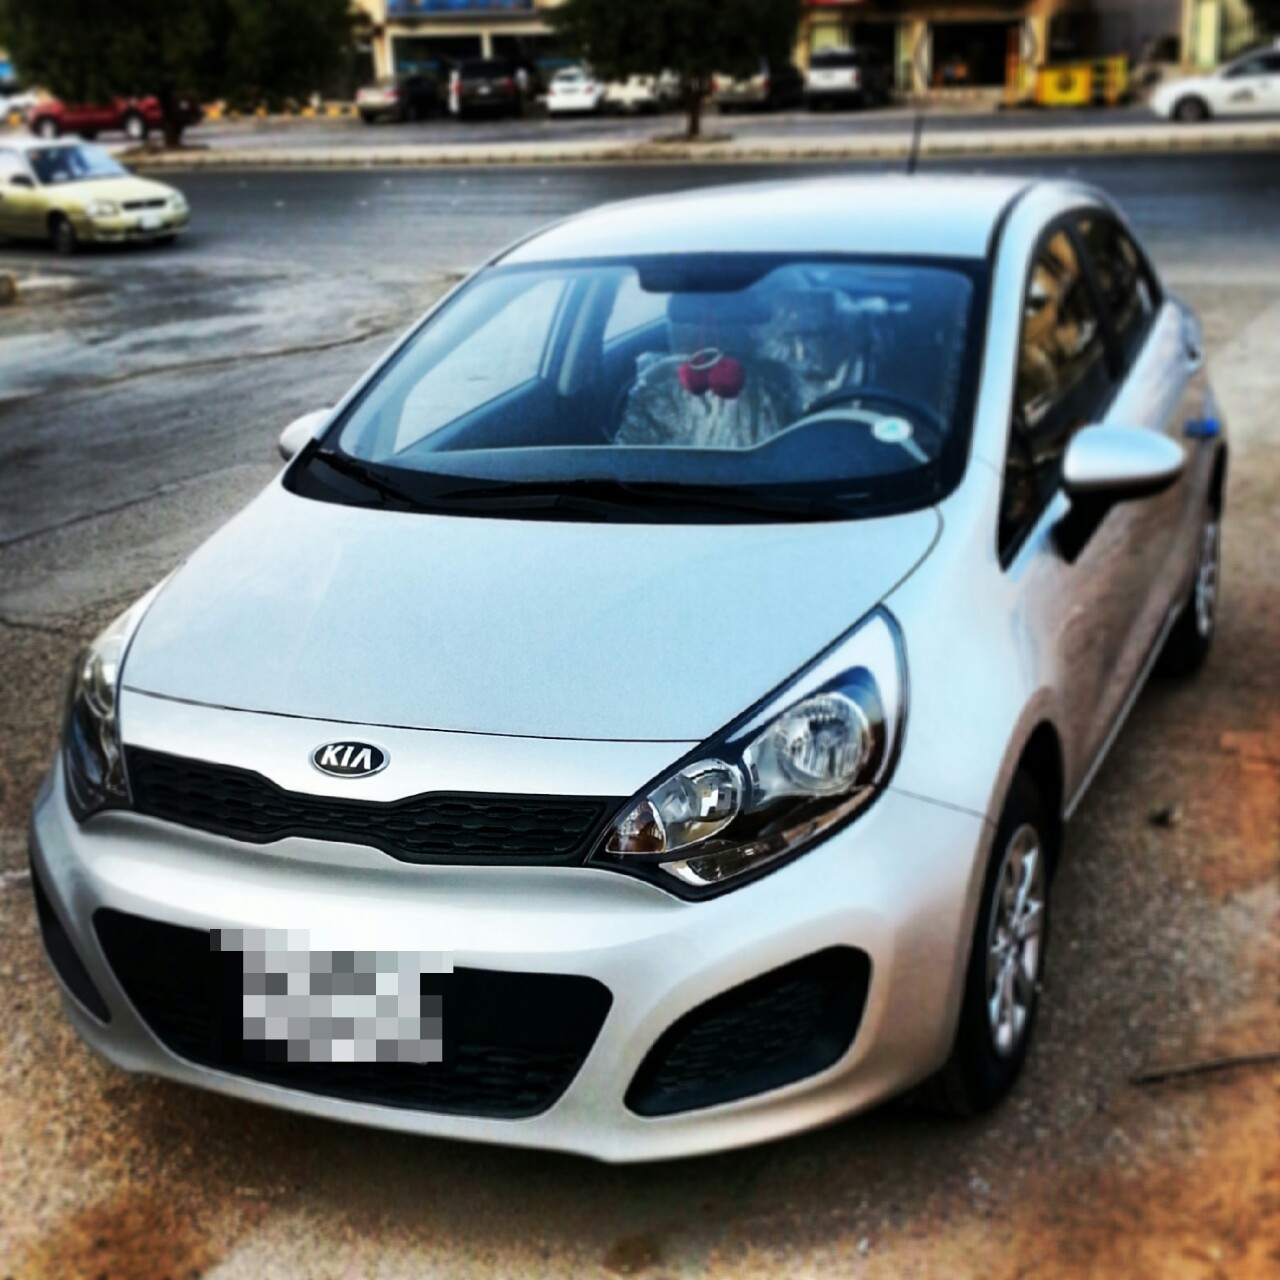 Kia Rio 2013 I love it! ♥♥